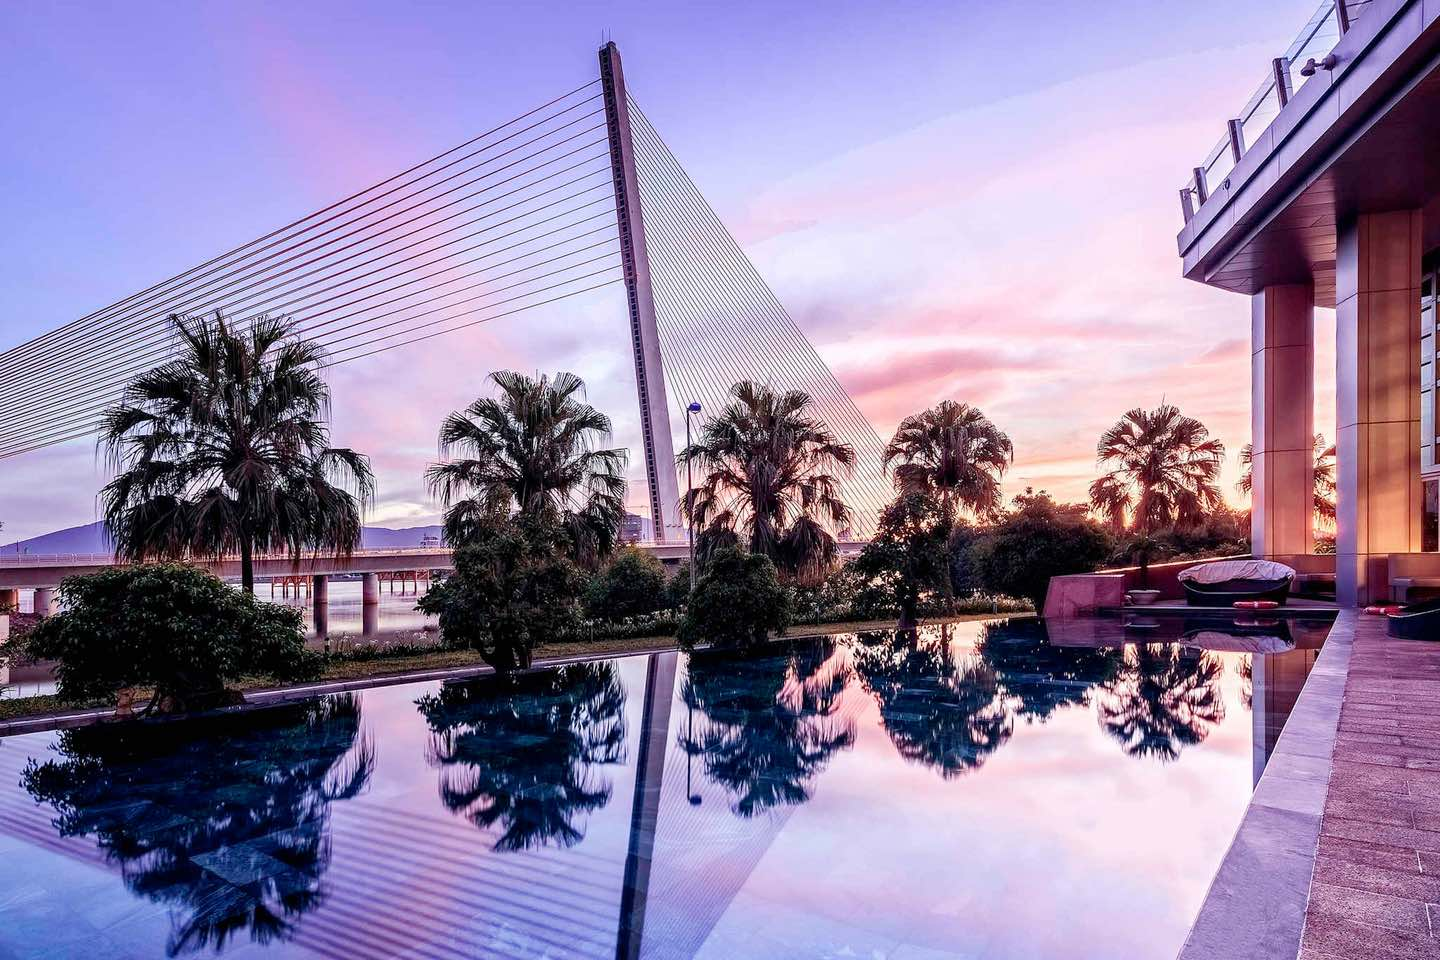 The 10 Best Hotels in Danang, Vietnam